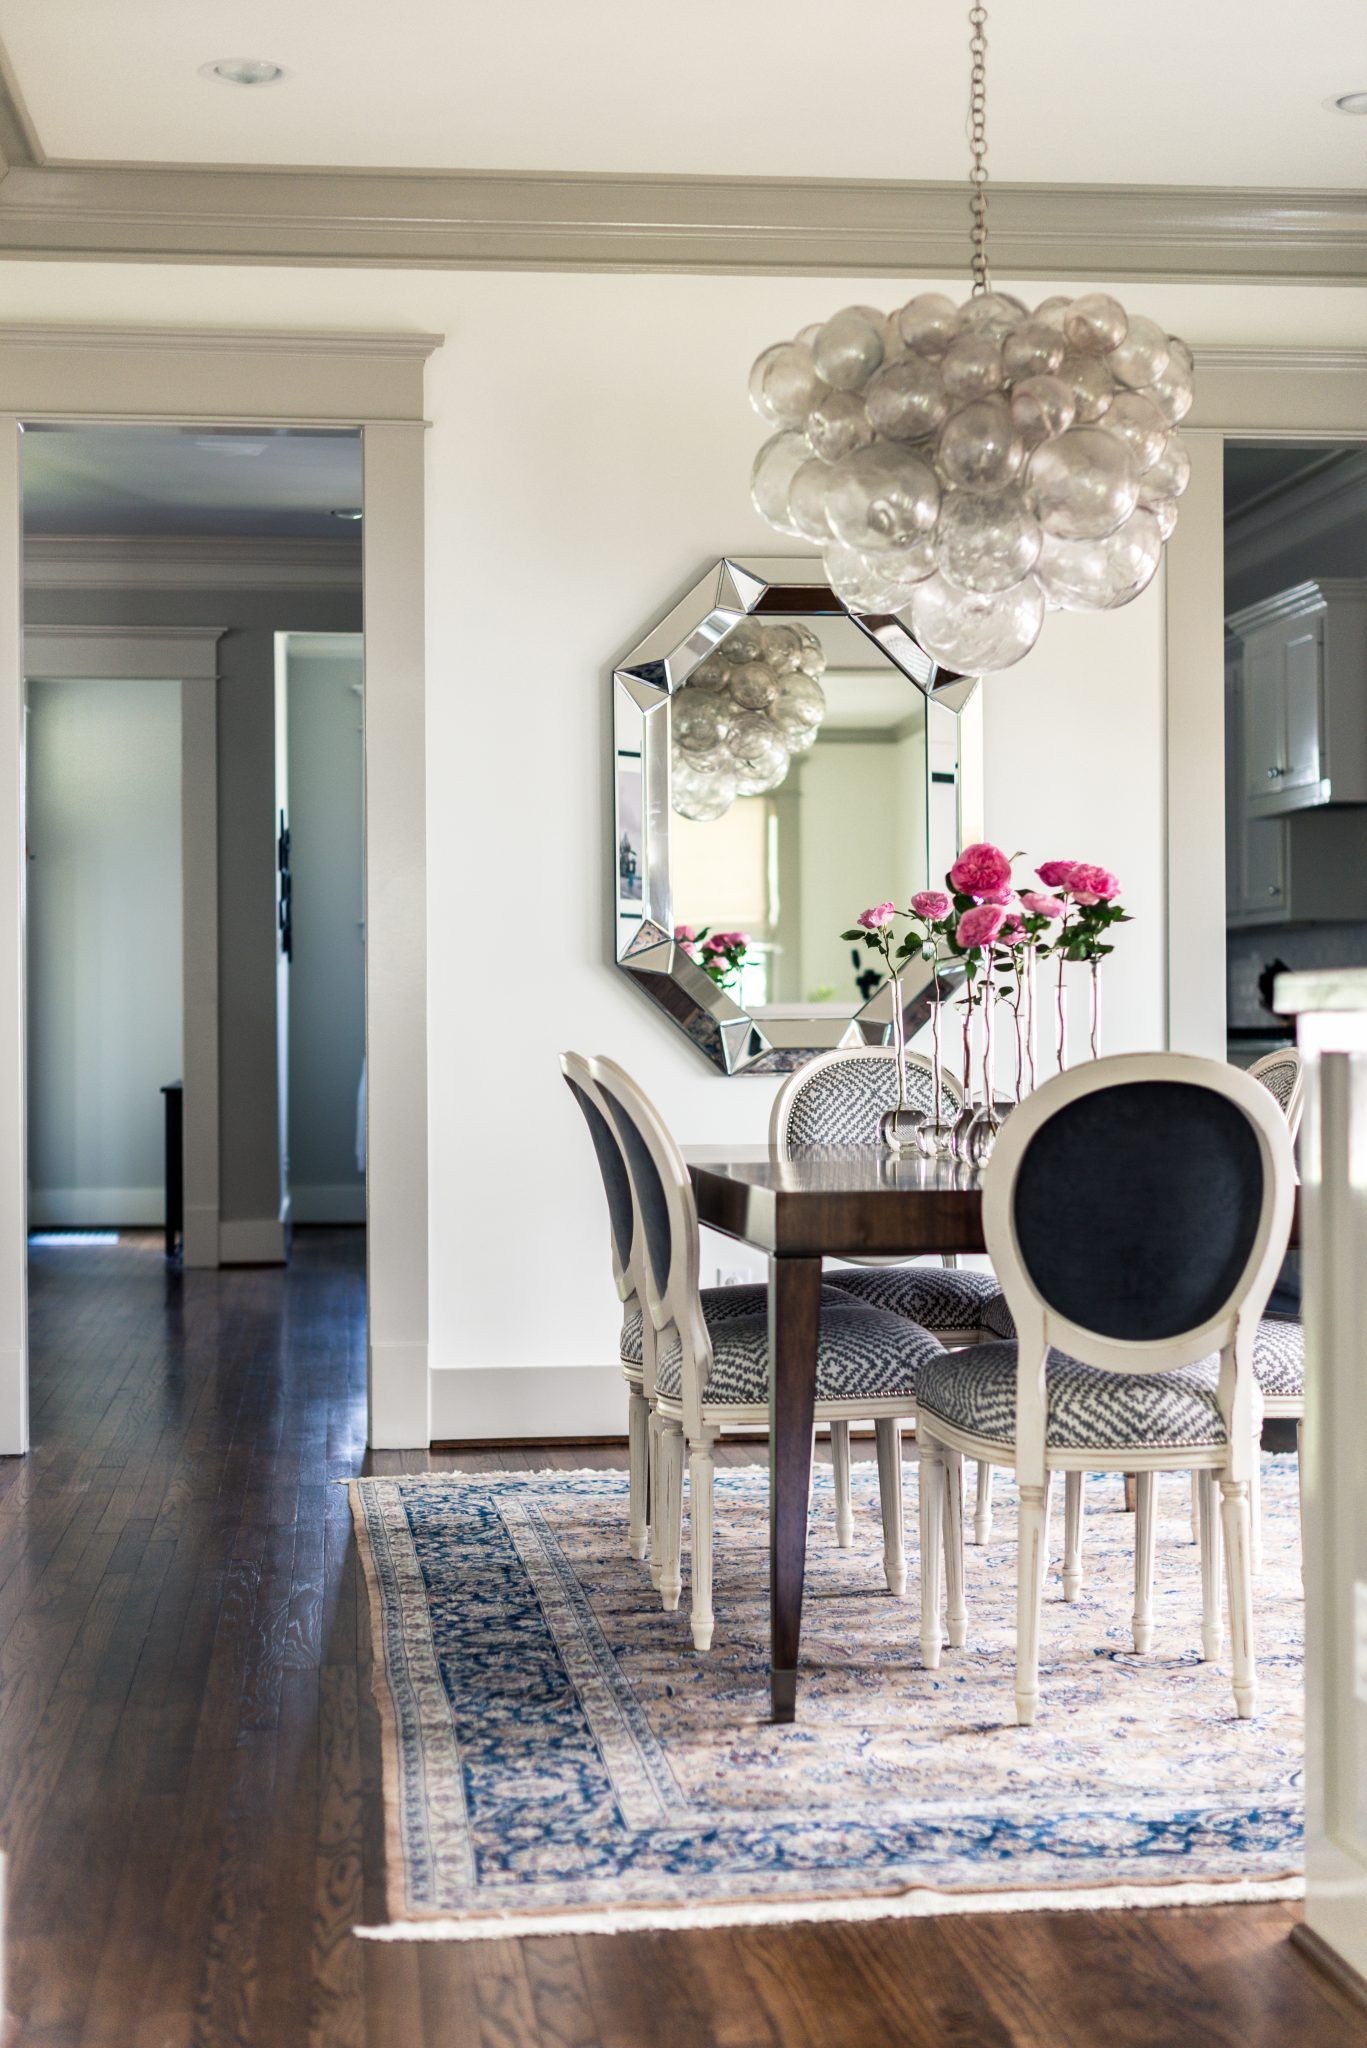 How Amazing Is That Bubble Chandelier We Love The Modern Touch To